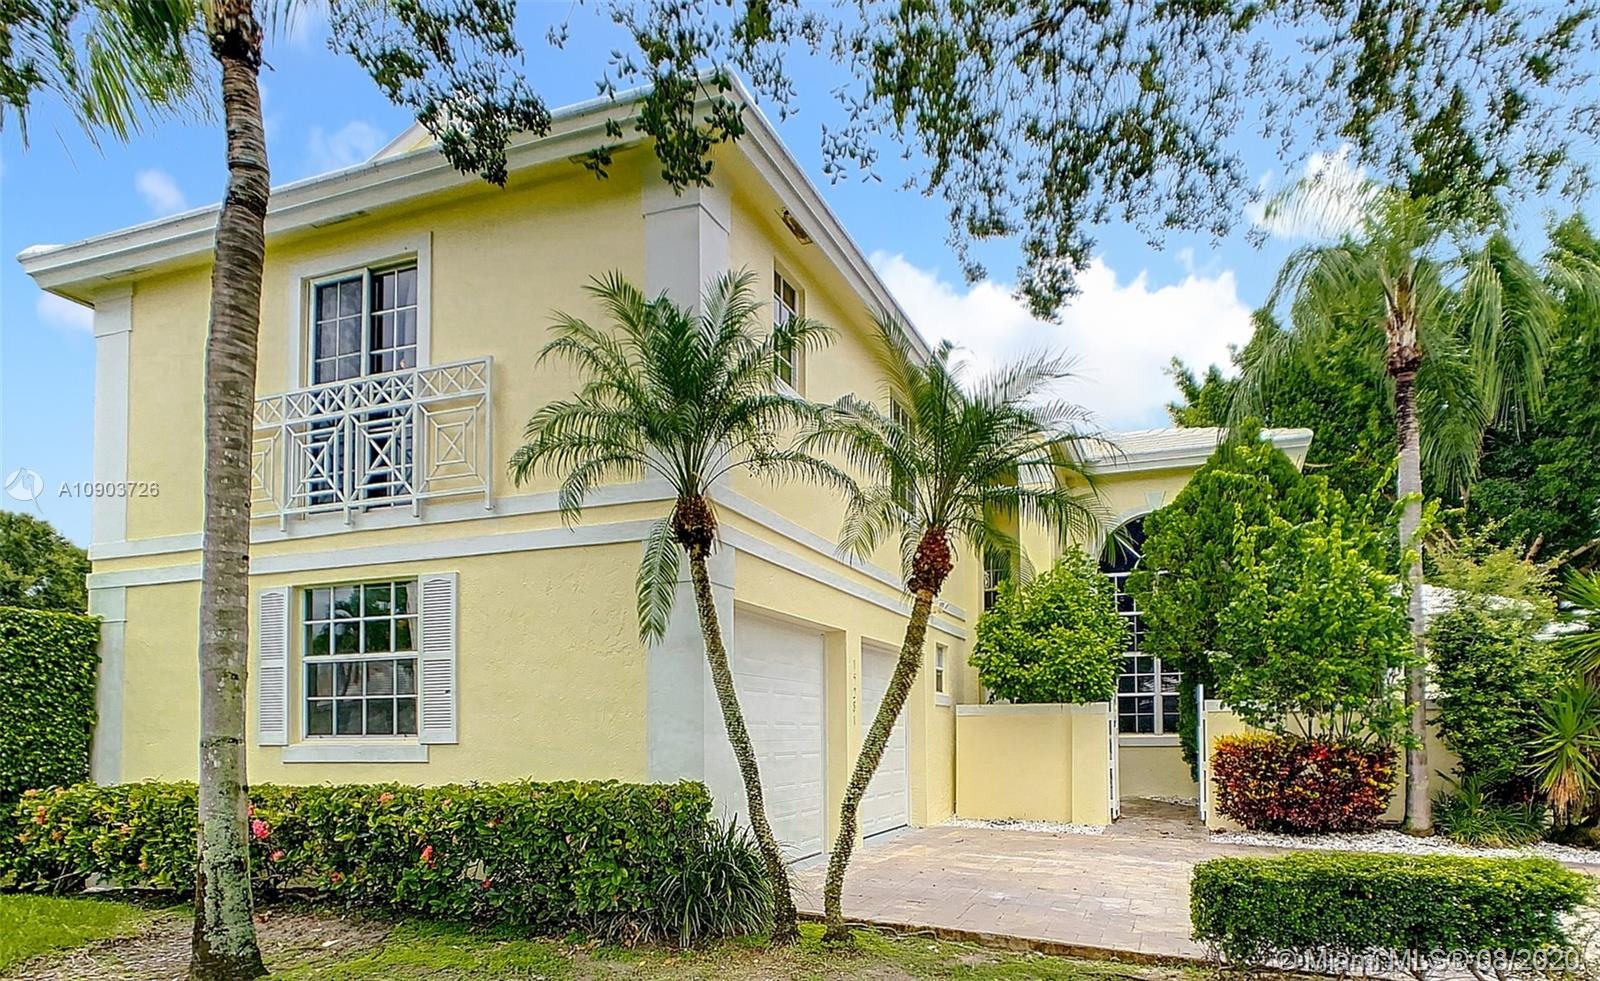 This breathtaking house brings together traditional elegance and contemporary design. It sits on a large corner lot in a cul-de-sac! Come appreciate its spacious layout, which will make you feel home yet offering a minimalist edge. Lots of Natural light! House was upgraded with a new kitchen, bathrooms, flooring, 2 AC units and hurricane garage doors. On 2019 roof was replaced! Outdoor space has 1 additional screened patio surrounded by beautiful landscaping. Enjoy Grand Palms Golf Resort lifestyle:Community offers gated entry, 24 hr security, beautiful palm lined streets, green spaces, children playground, biking and jogging paths. HOA includes cable, alarm, lawn service, exterior painting and pressure cleaning. A schools, shopping and restaurants just outside community. Great location!